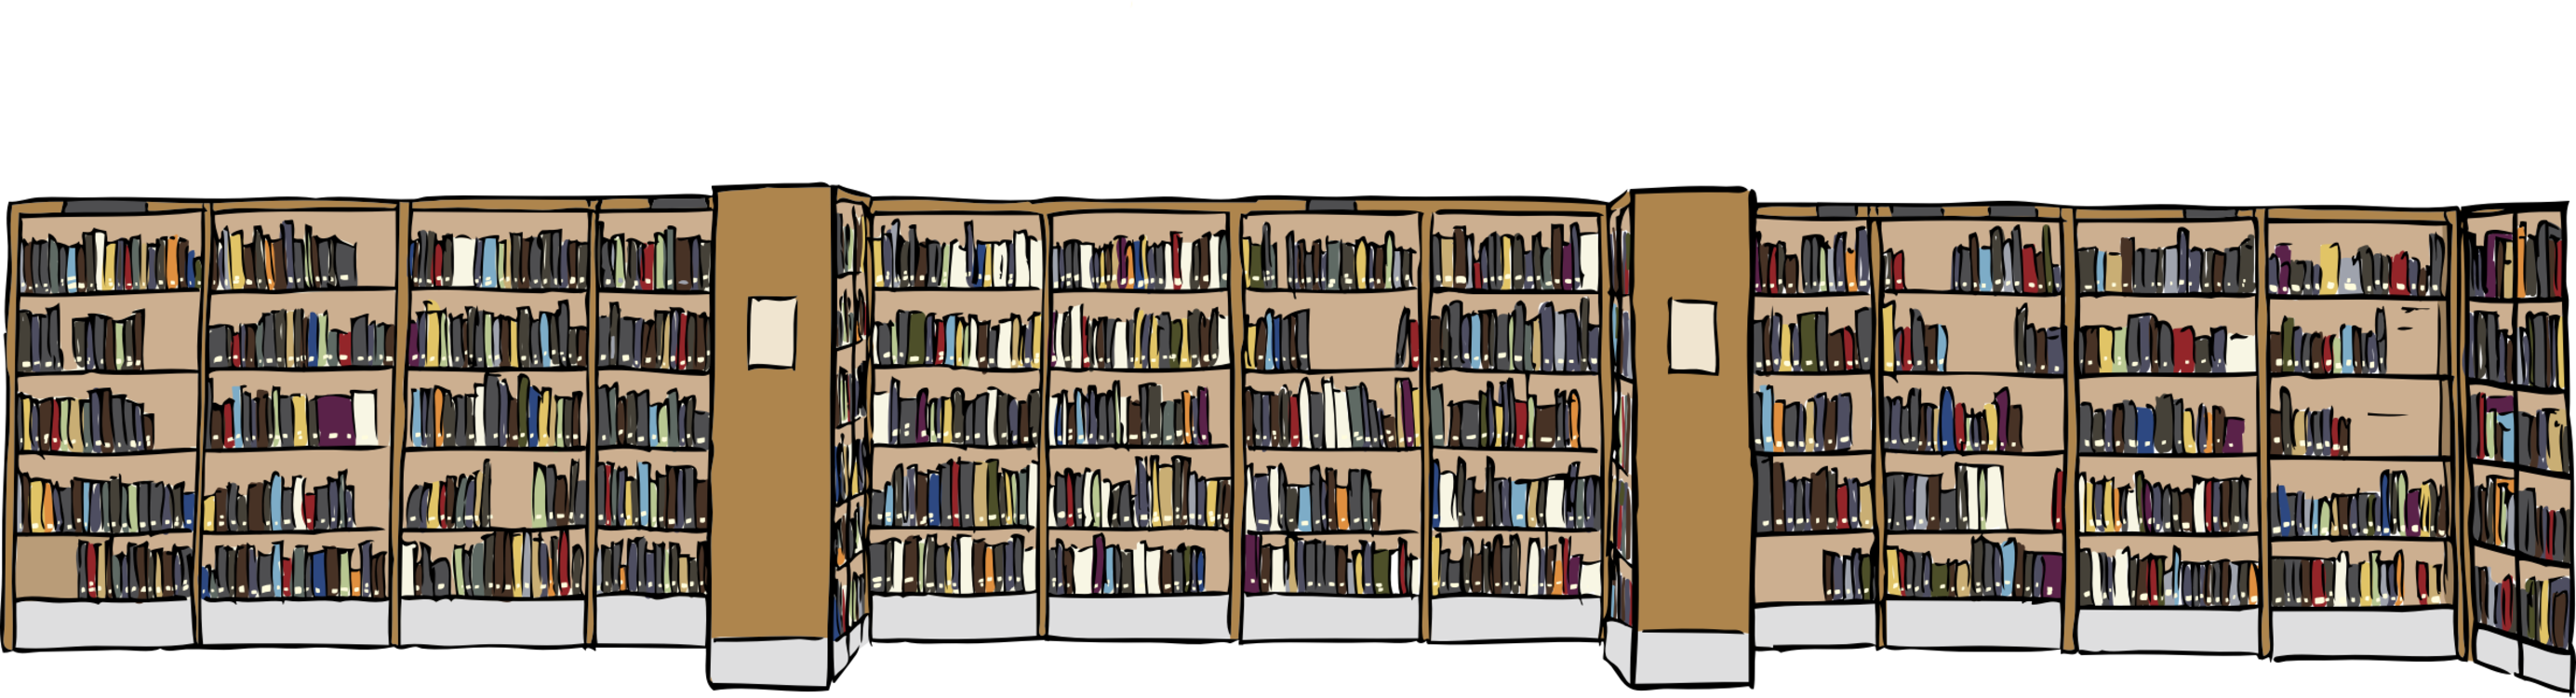 Librarian clipart shelve. Shelving shelf library png